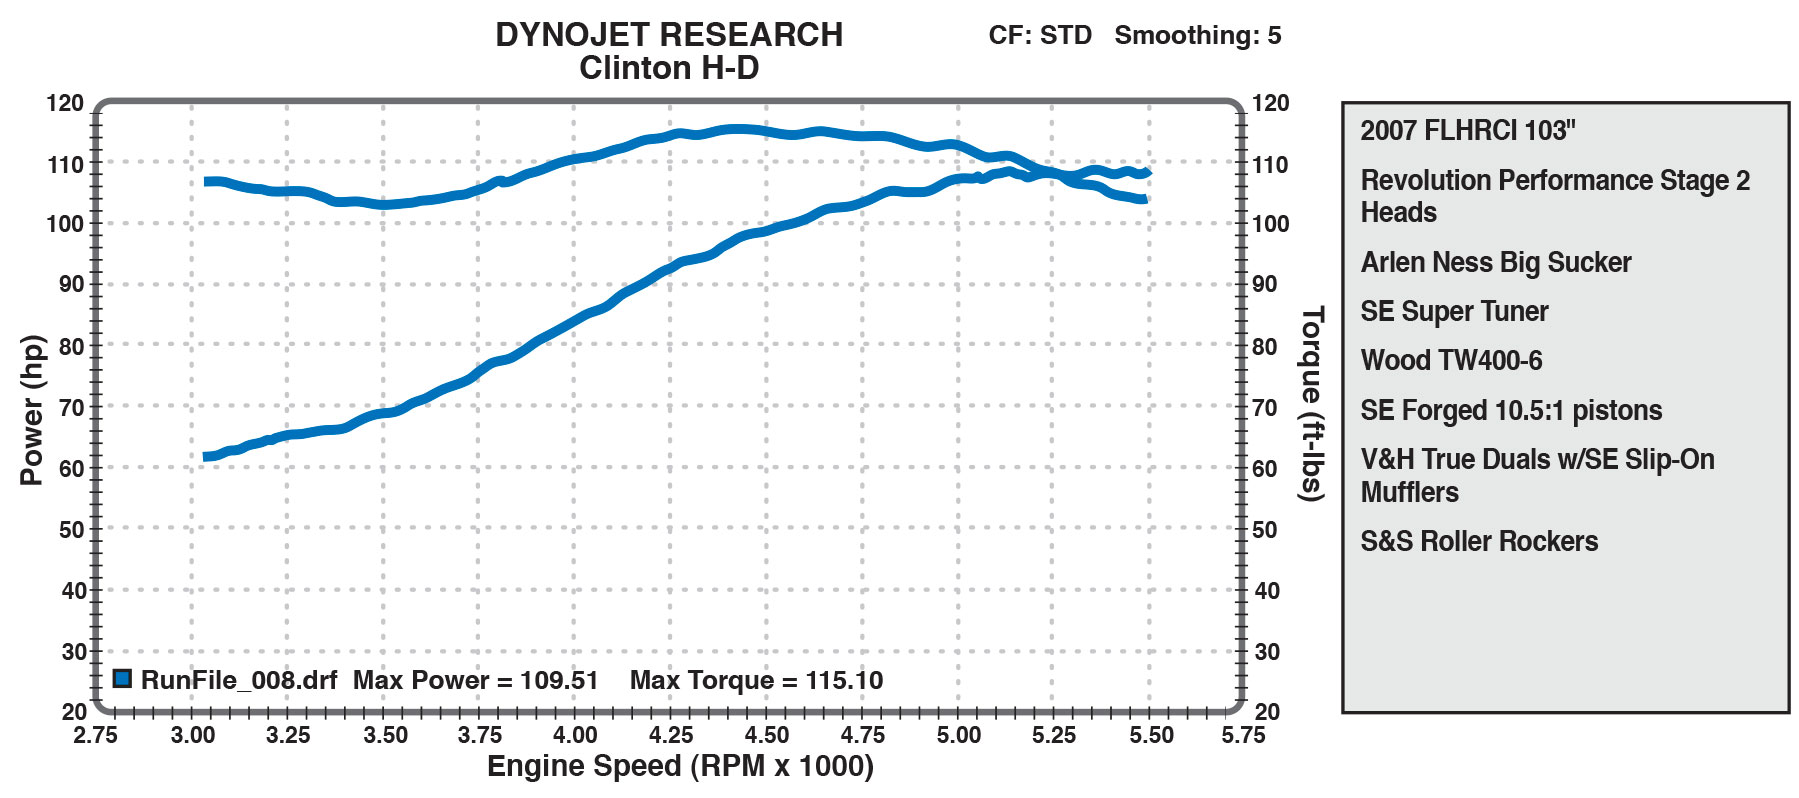 Stage 2 Heads dyno Chart from Clinton Harley-Davidson